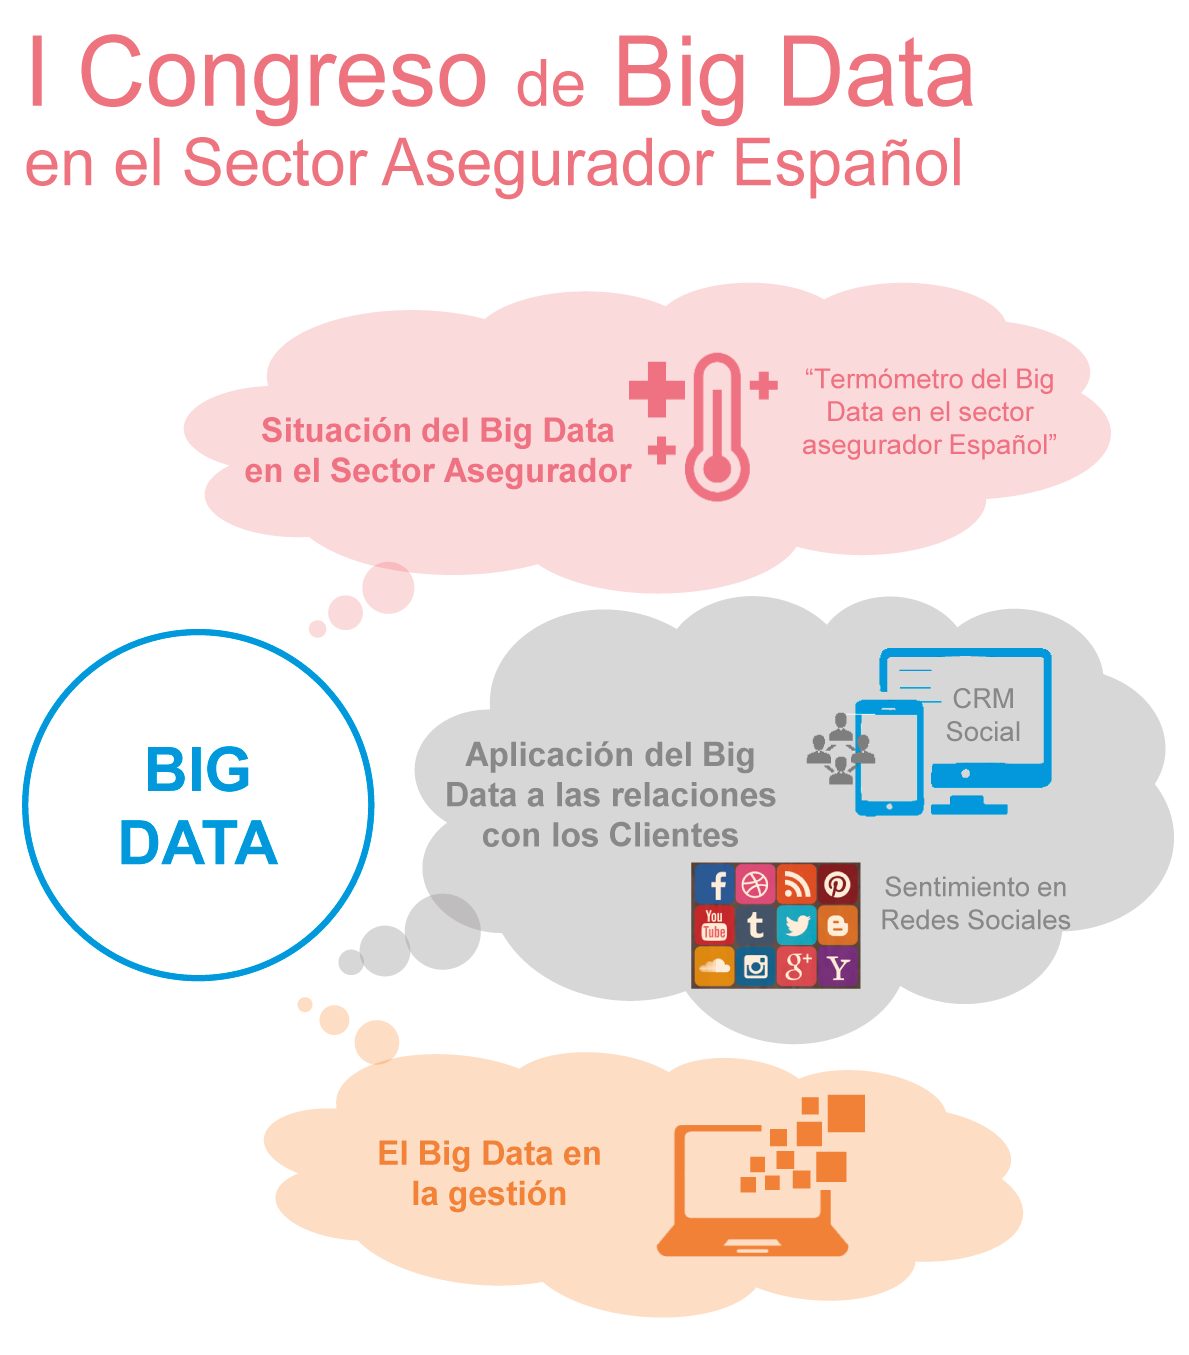 ICEA - I Congreso de Big Data en el sector asegurador. First Congress of Big Data in the Spanish Insurance Industry